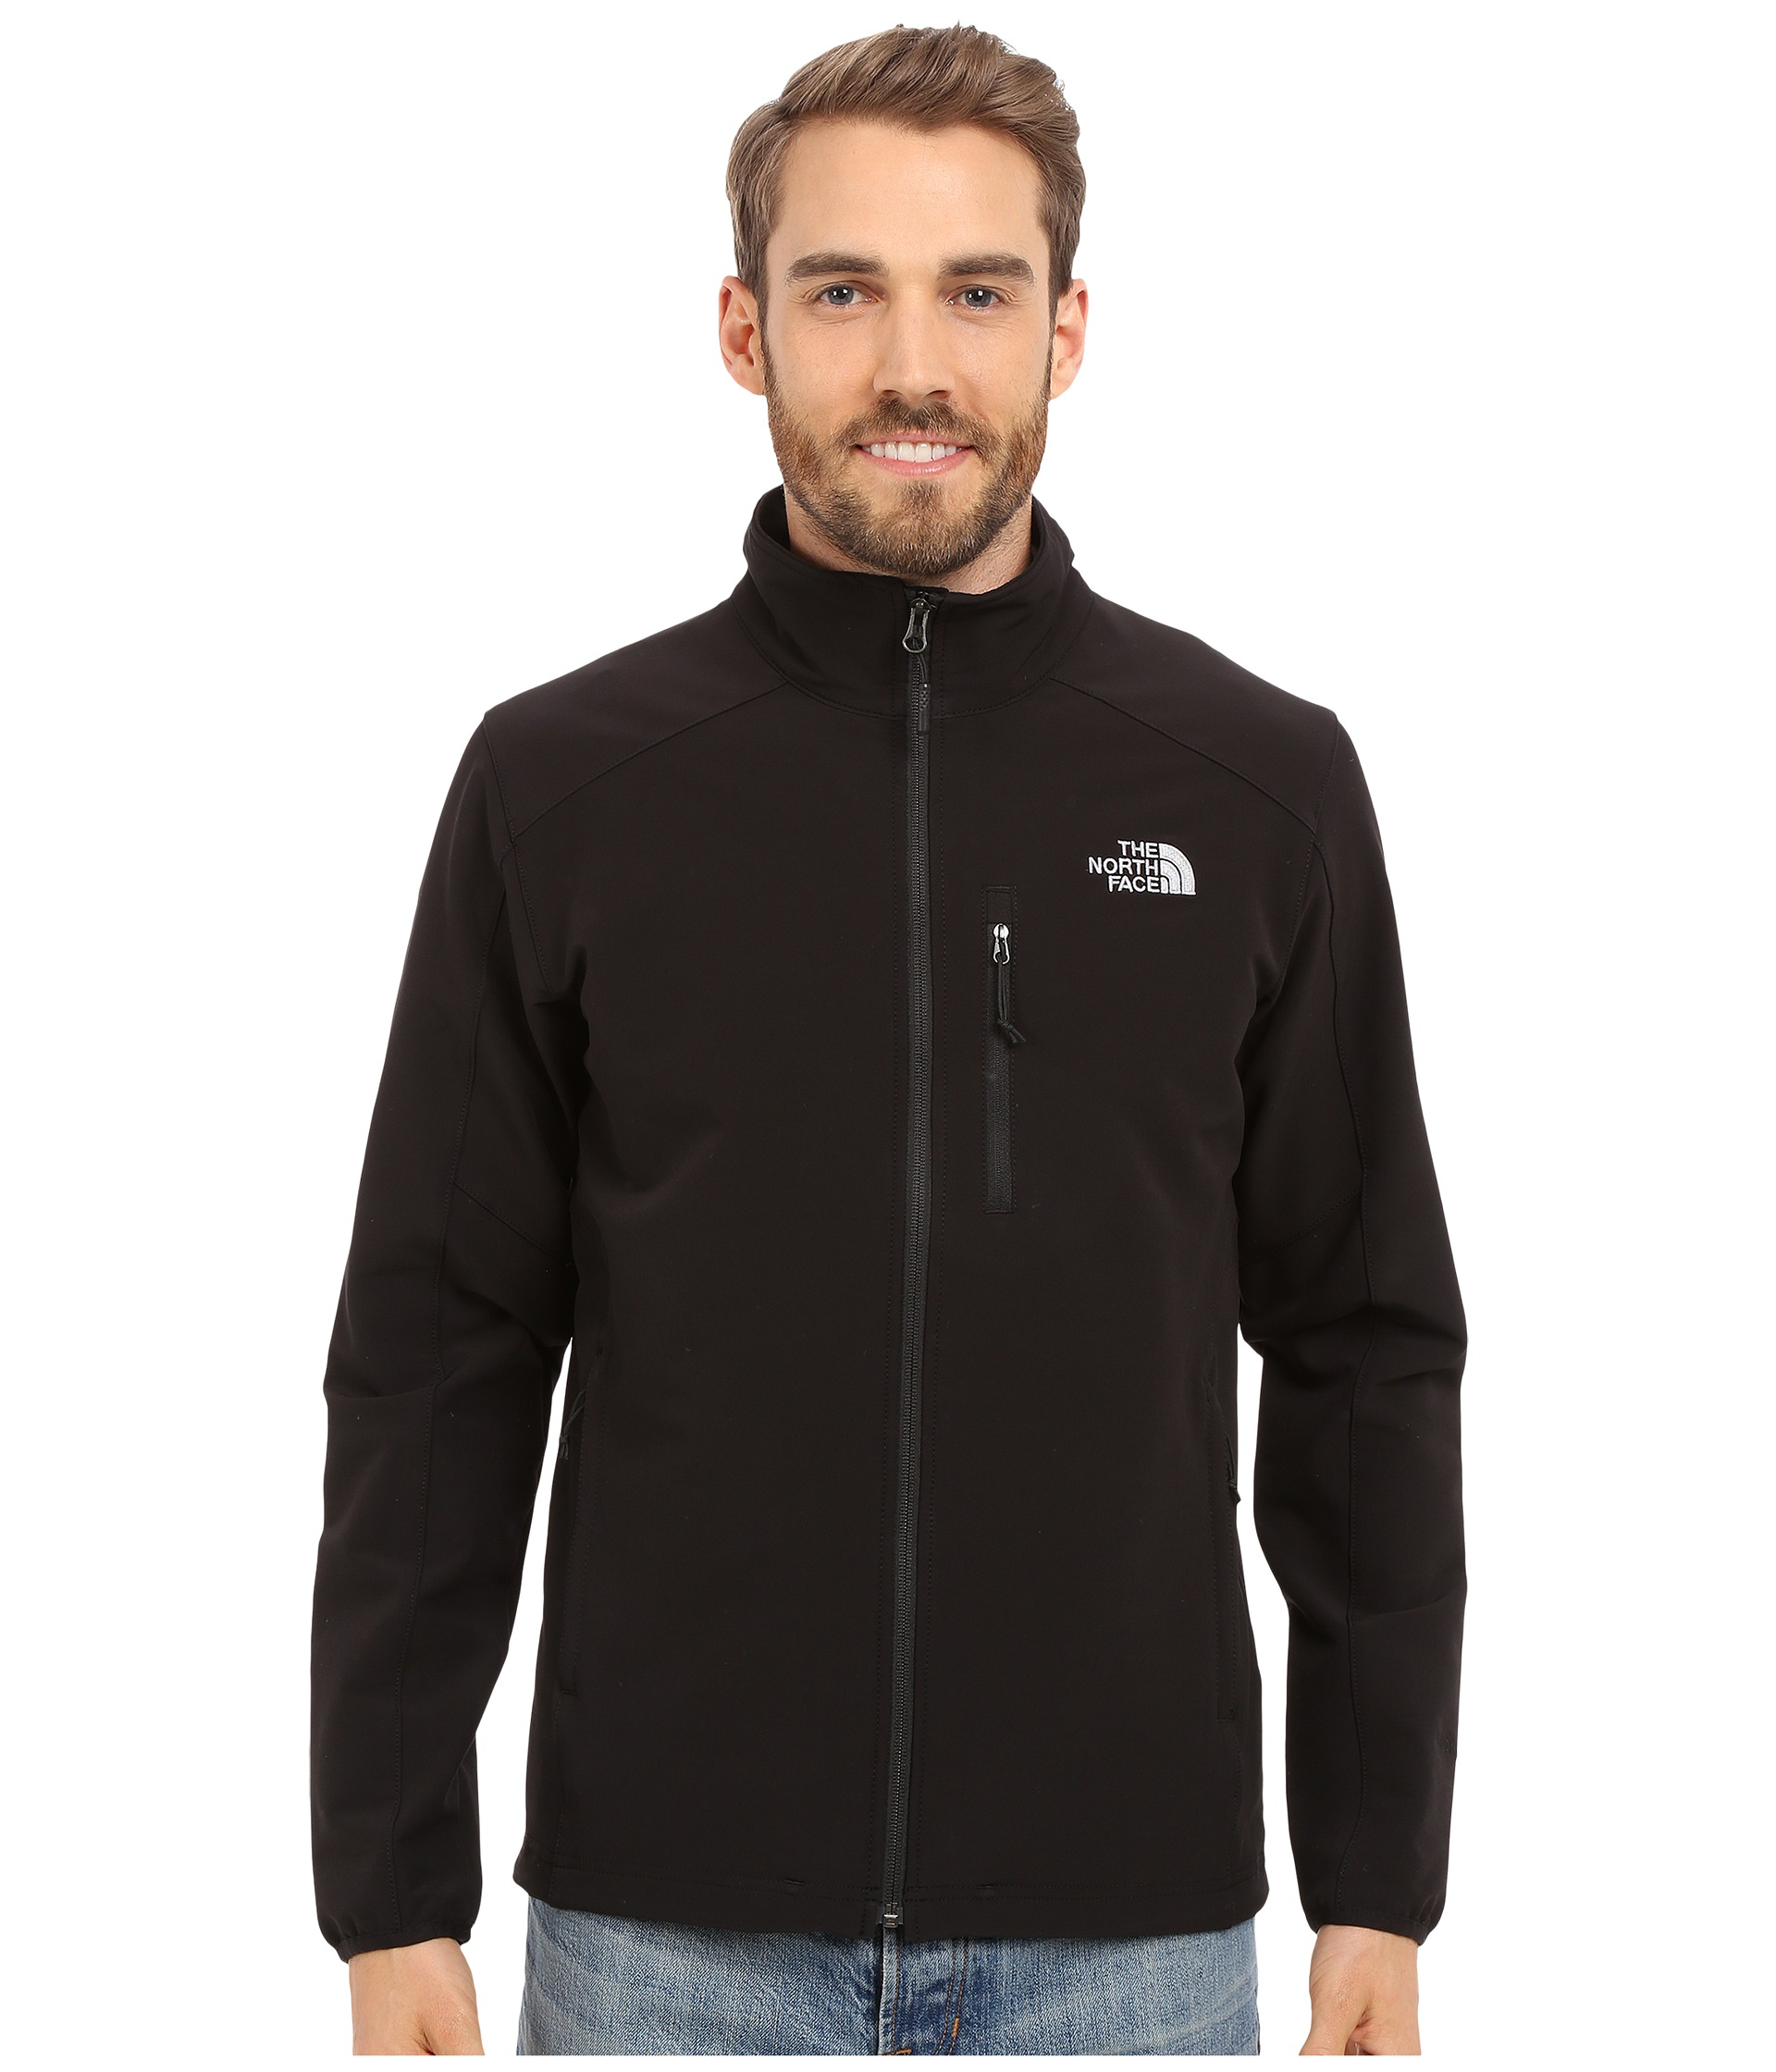 the north face inc The north face breckenridge – get free shipping on north face jacket,  backpack, fleece, denali jacket, you can count on the north face breckenridge  here at.